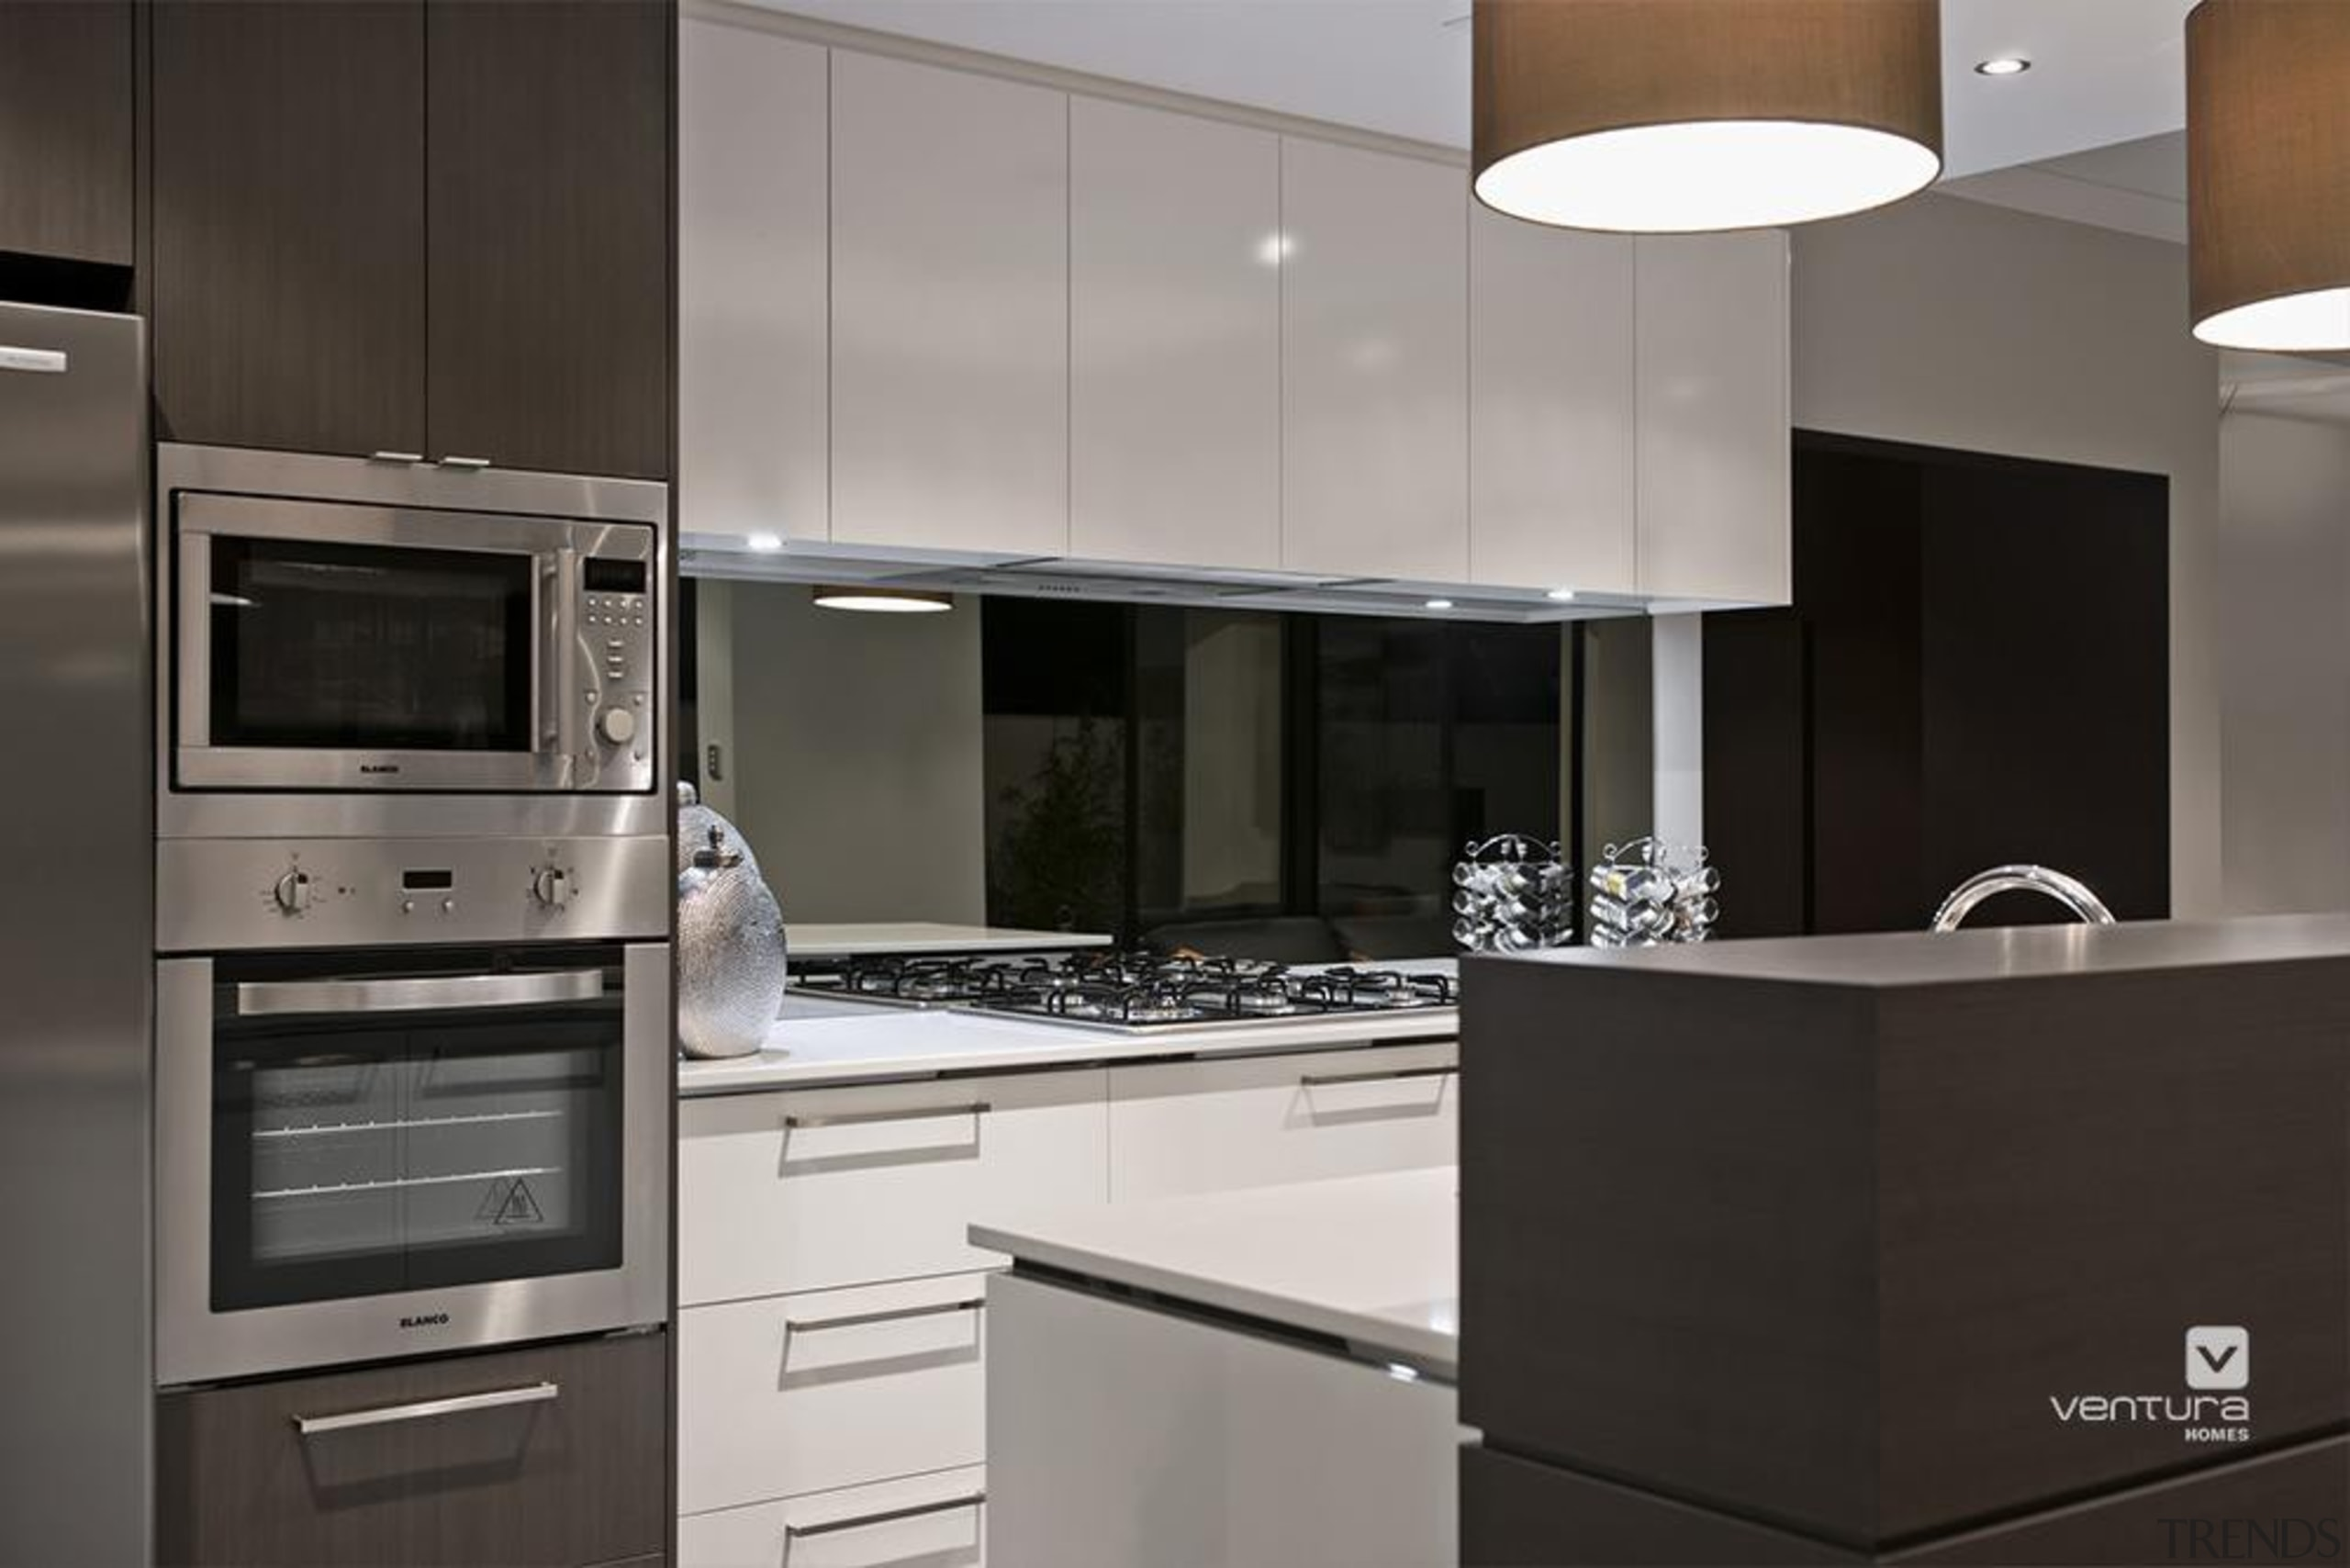 Kitchen design. - The Providence Display Home - cabinetry, countertop, cuisine classique, home appliance, interior design, kitchen, kitchen appliance, kitchen stove, major appliance, product design, gray, black